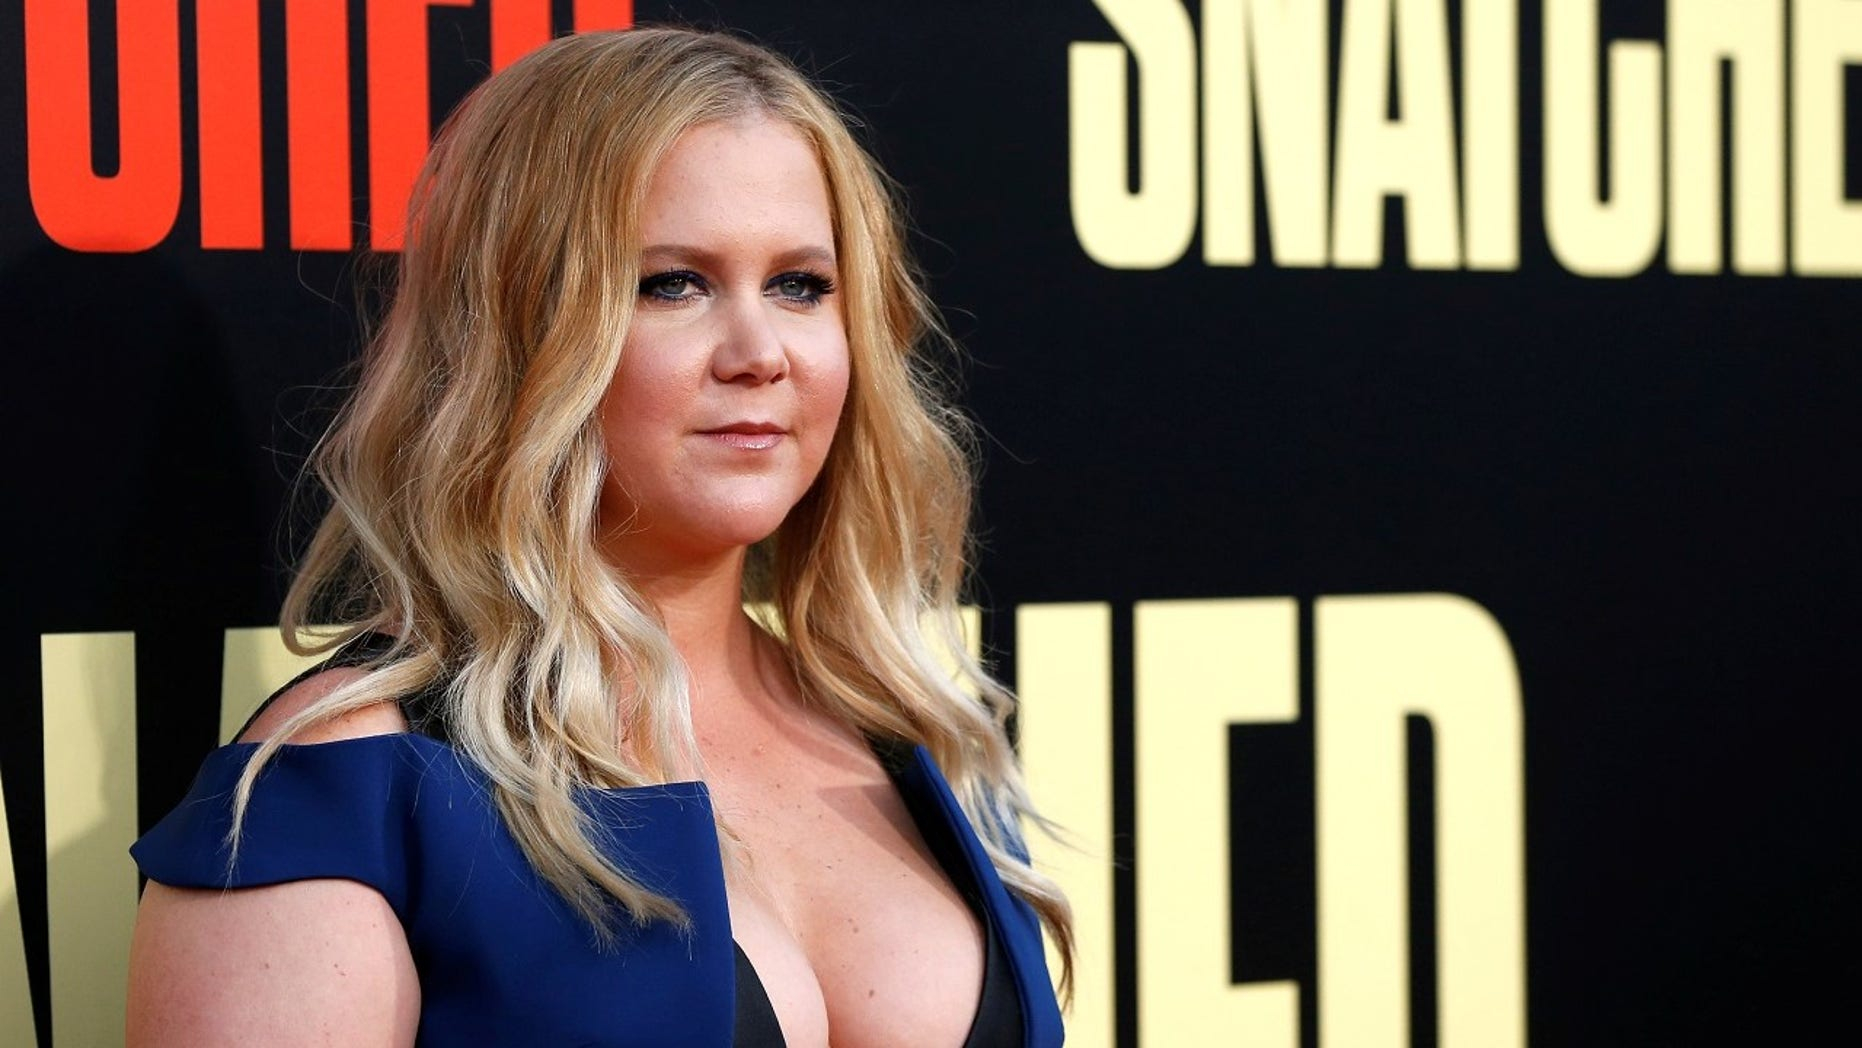 Pregnant comedian Amy Schumer announced Thursday that she is canceling her comedy tour after landing in the hospital.